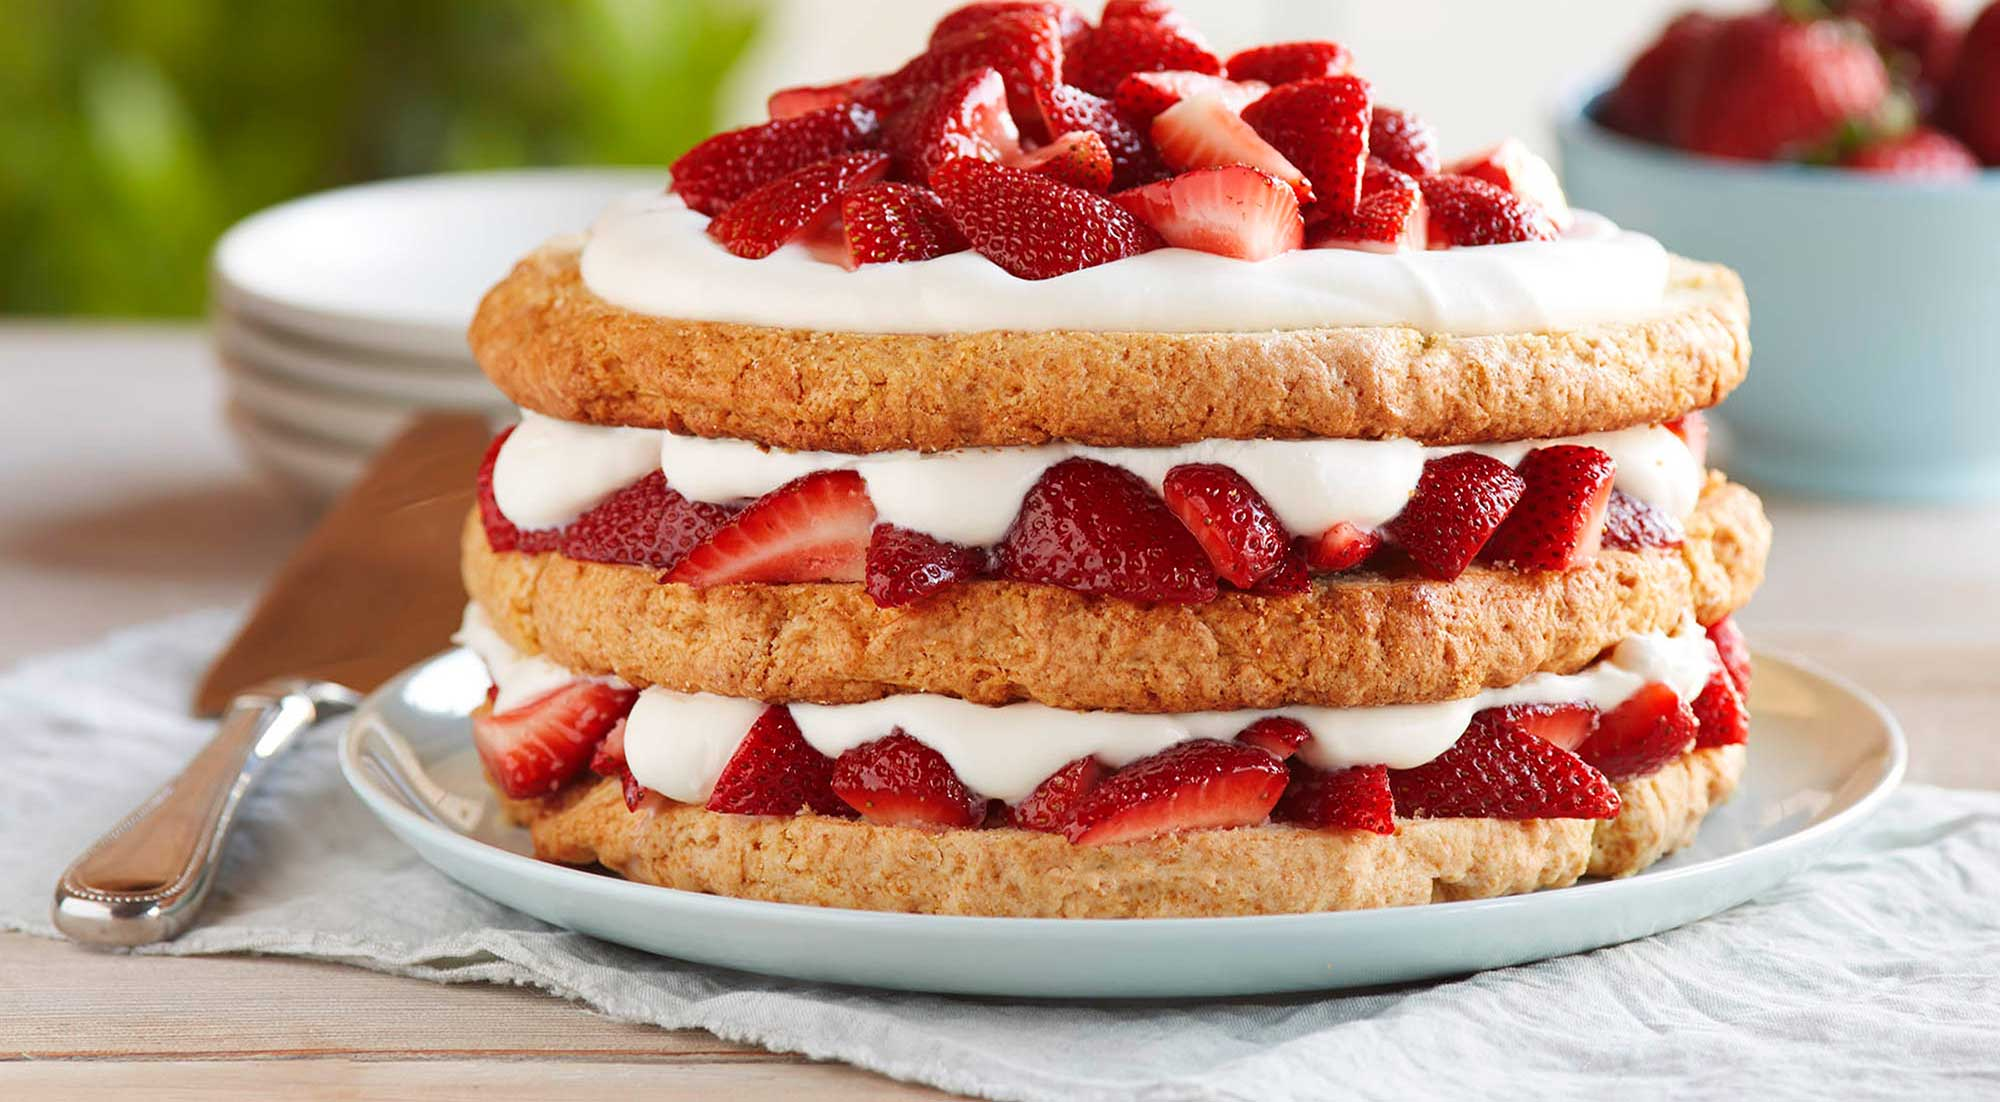 I Want Strawberry Shortcake